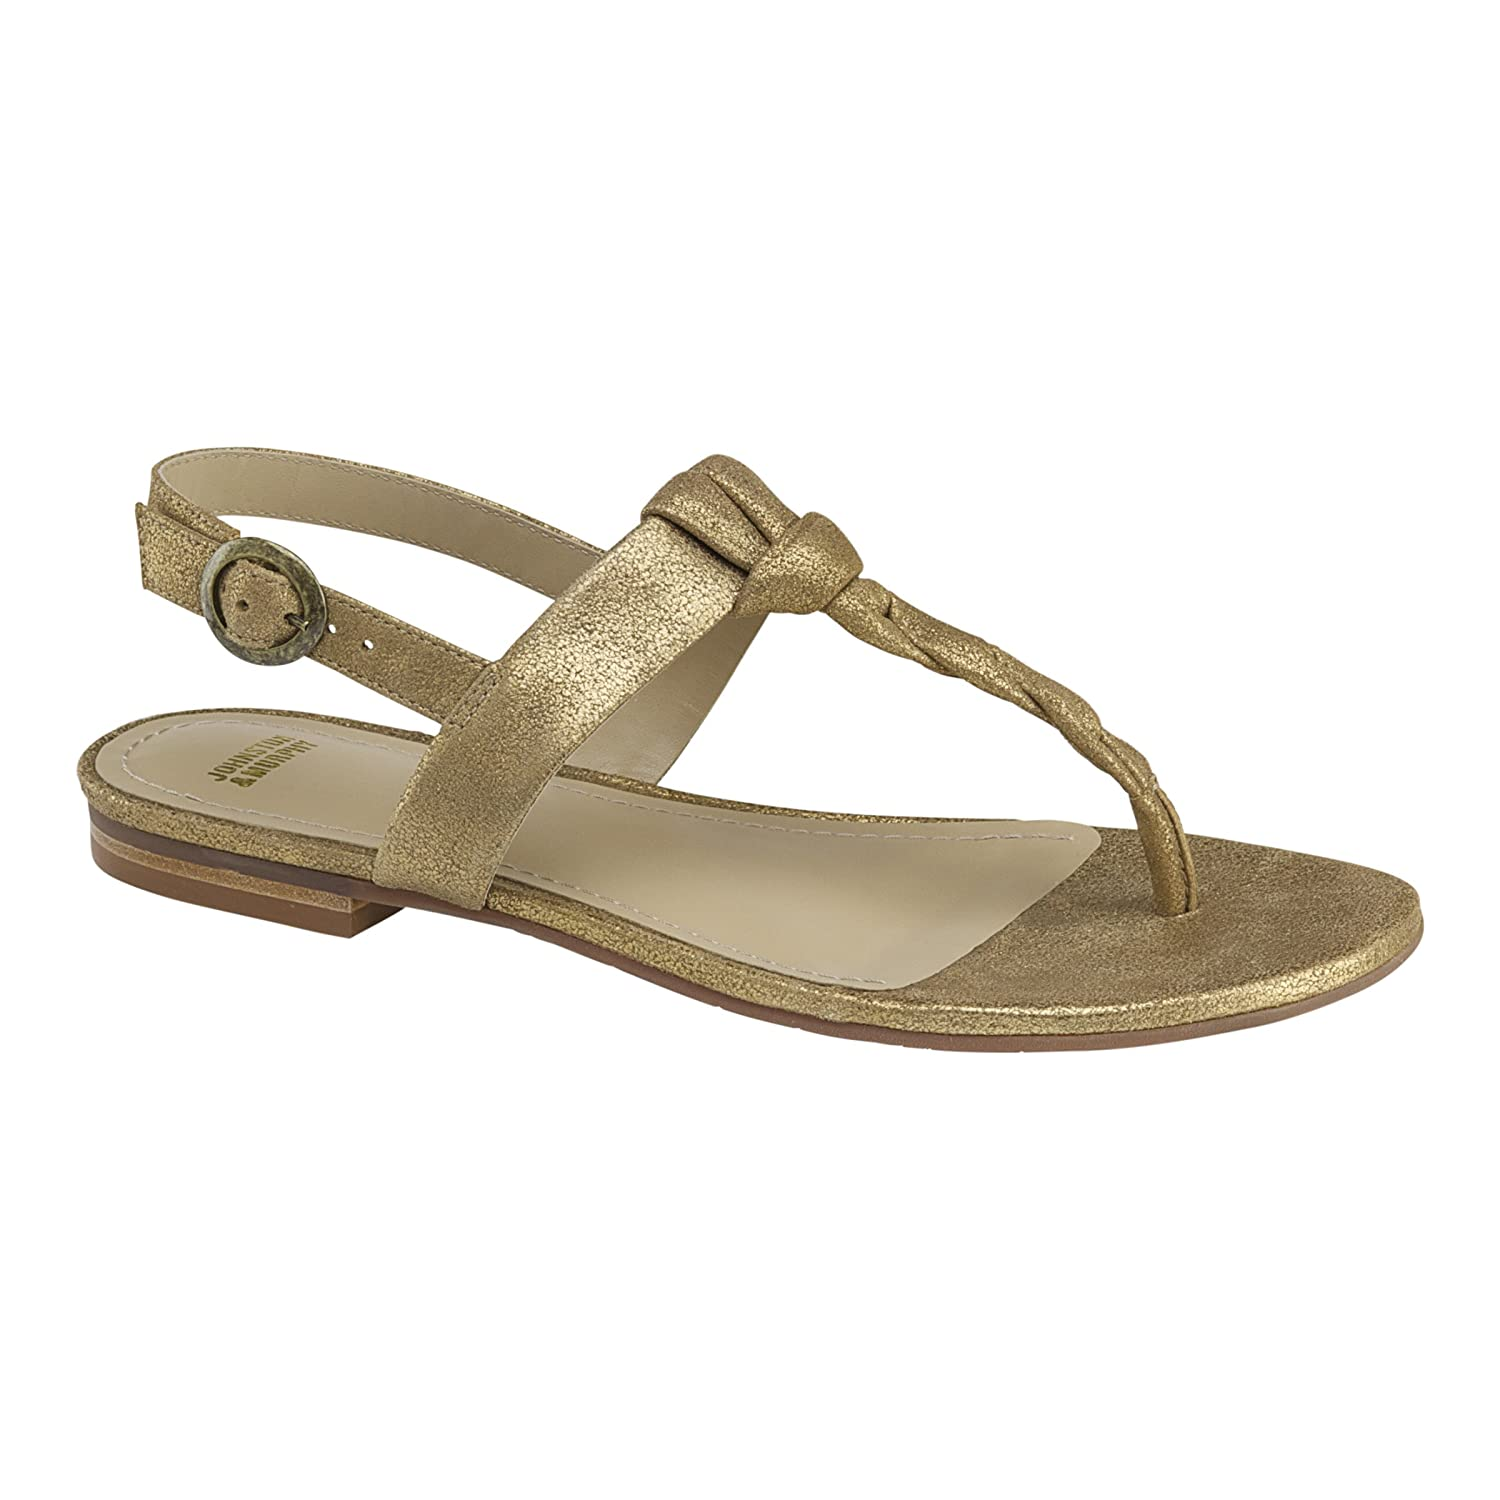 Johnston & Murphy Women's Holly Dress Sandal B01KYQT21M 7.5 M US|Gold